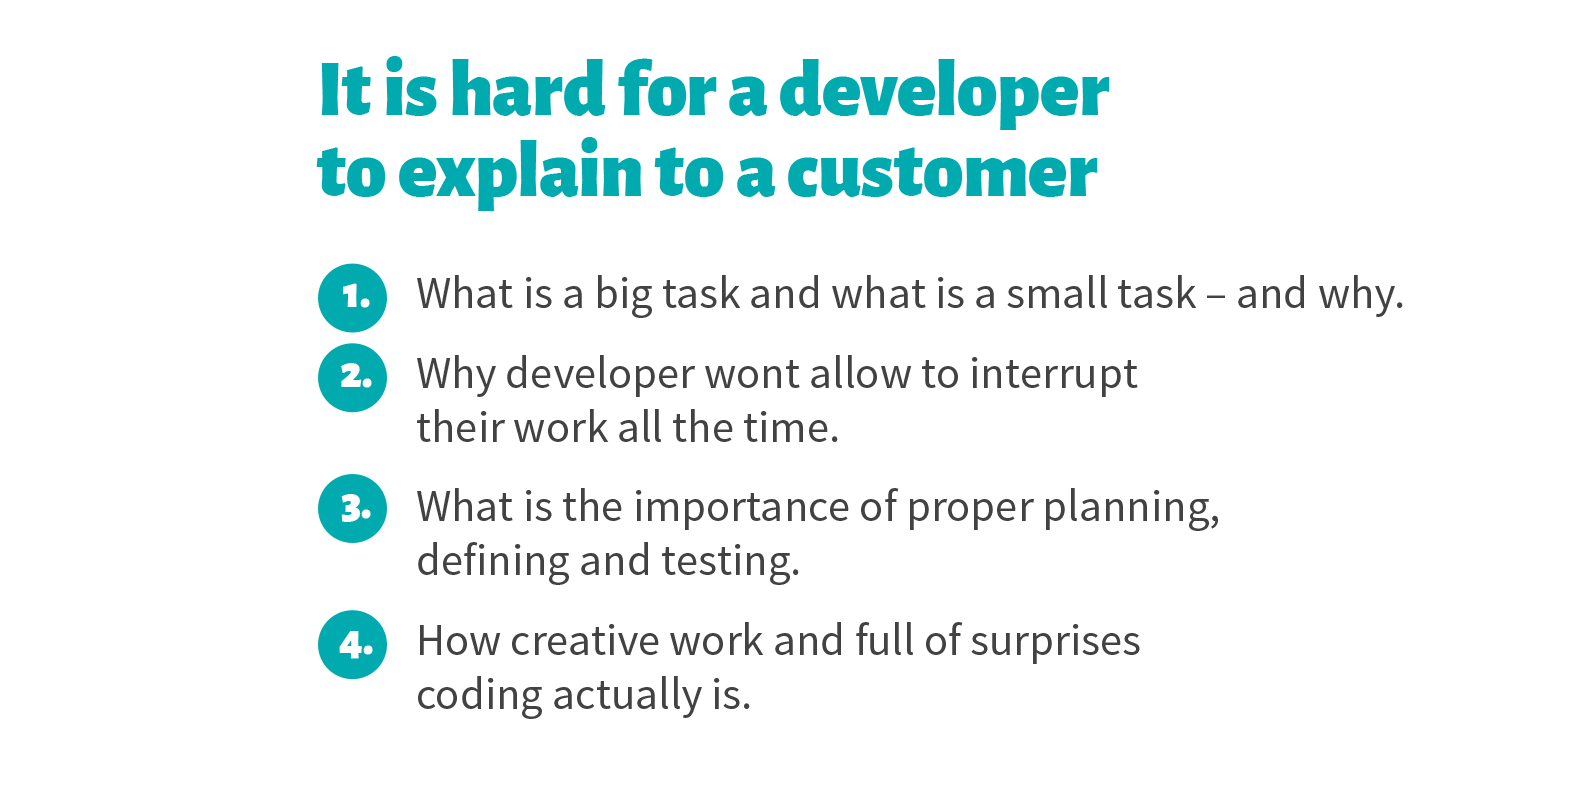 There's text in the photo that says: It is hard for a dev to explain to a customer what is a big task and what is a small task and why; why developer wont allow to interrupt their work all the time; what is the importance of proper planning, defining and testing; how creative work and full of surprises coding actually is.